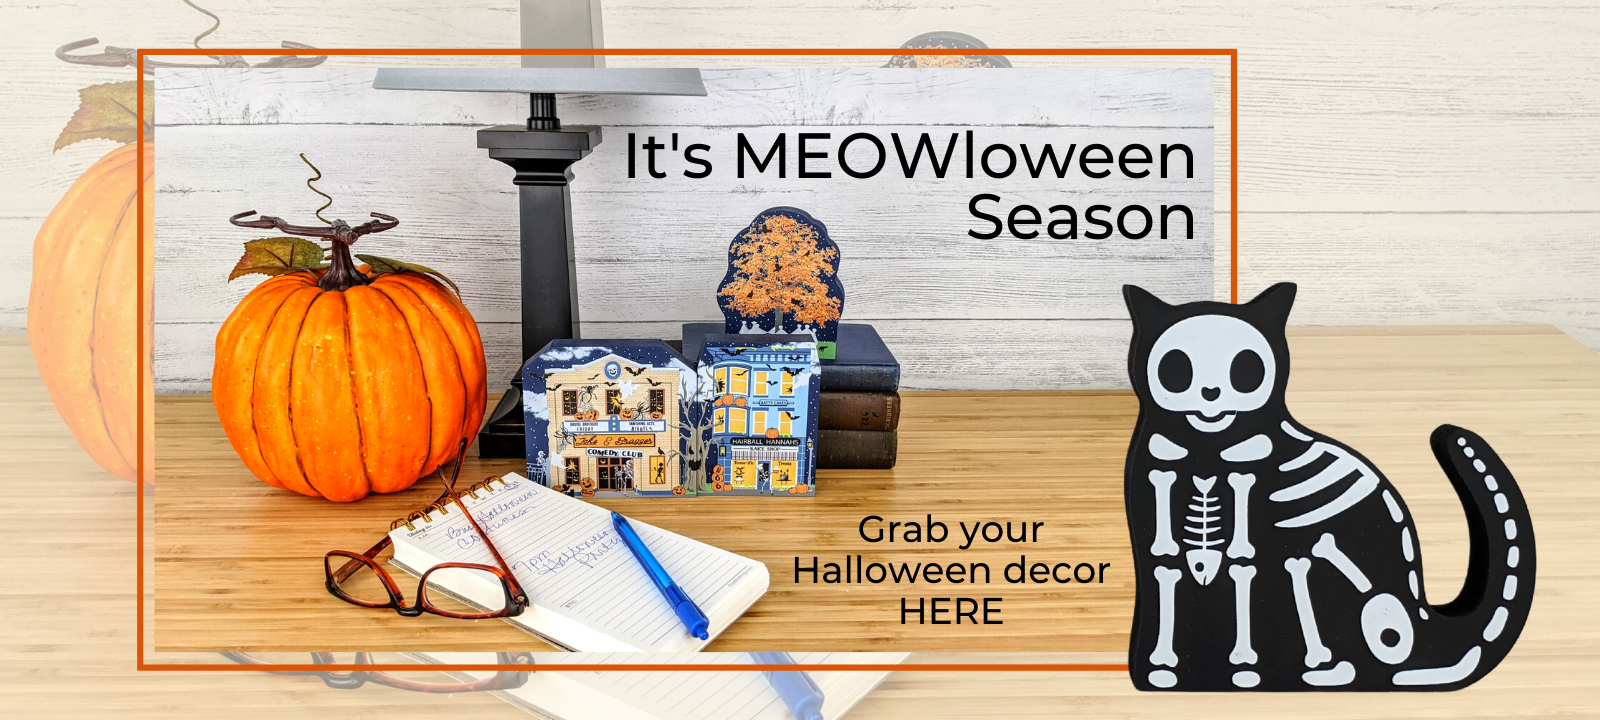 Get your paws on all your Halloween decorations here.